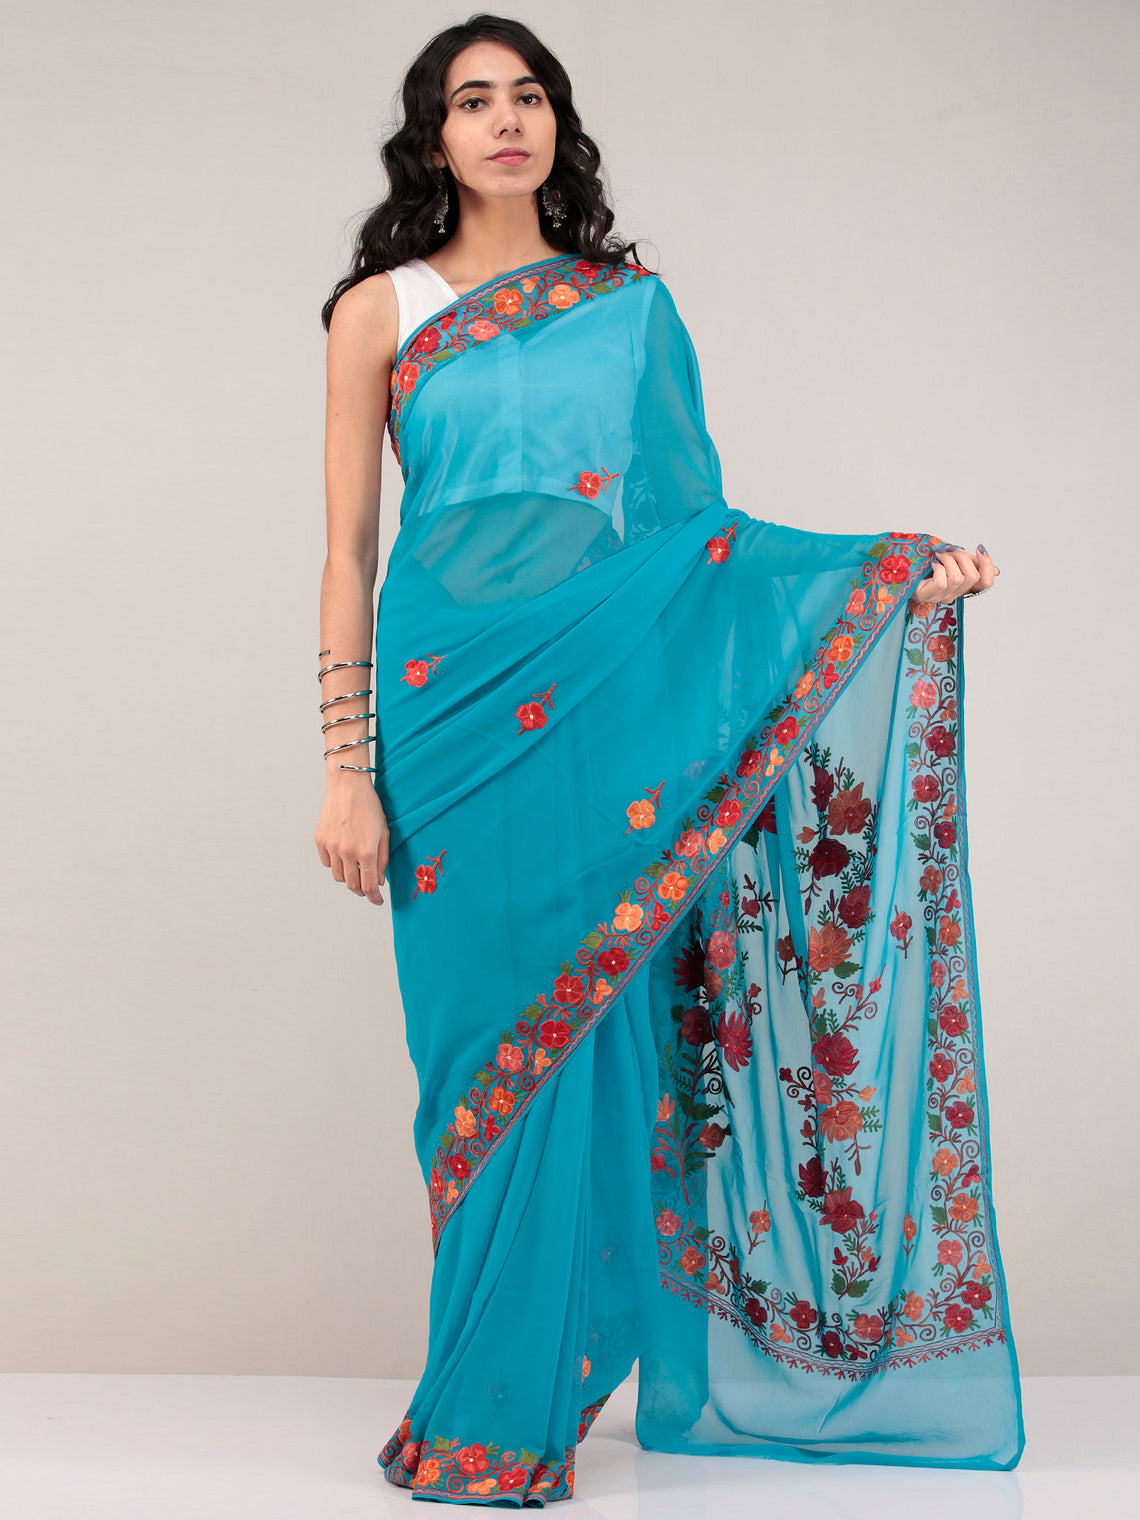 Blue Aari Embroidered Georgette Saree From Kashmir - S031704677